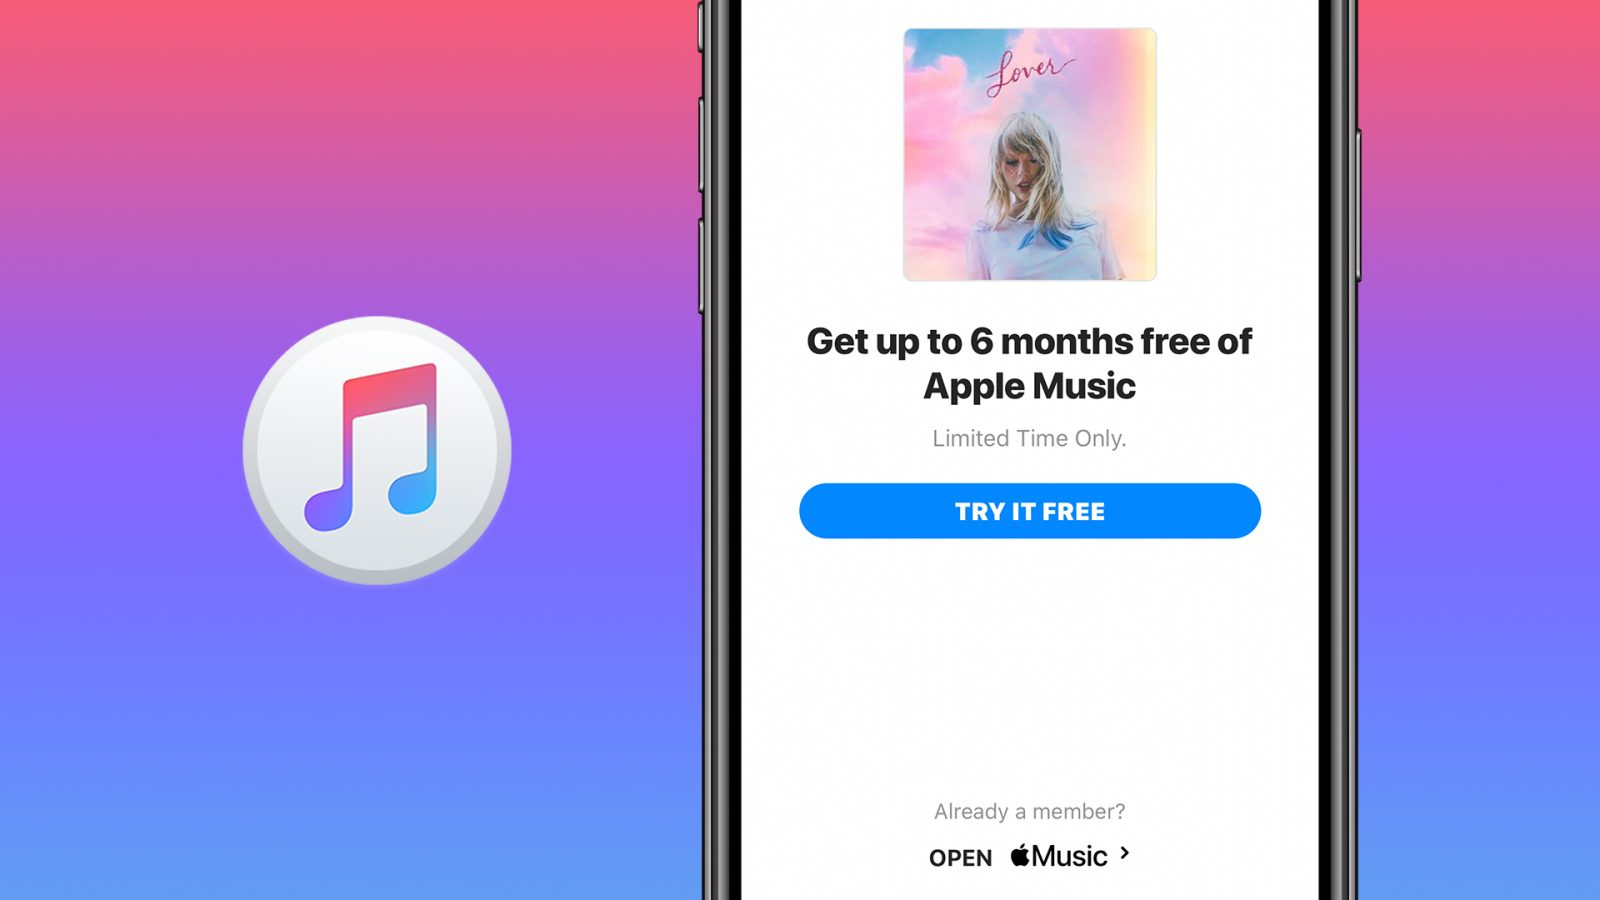 Do you have to pay for apple music